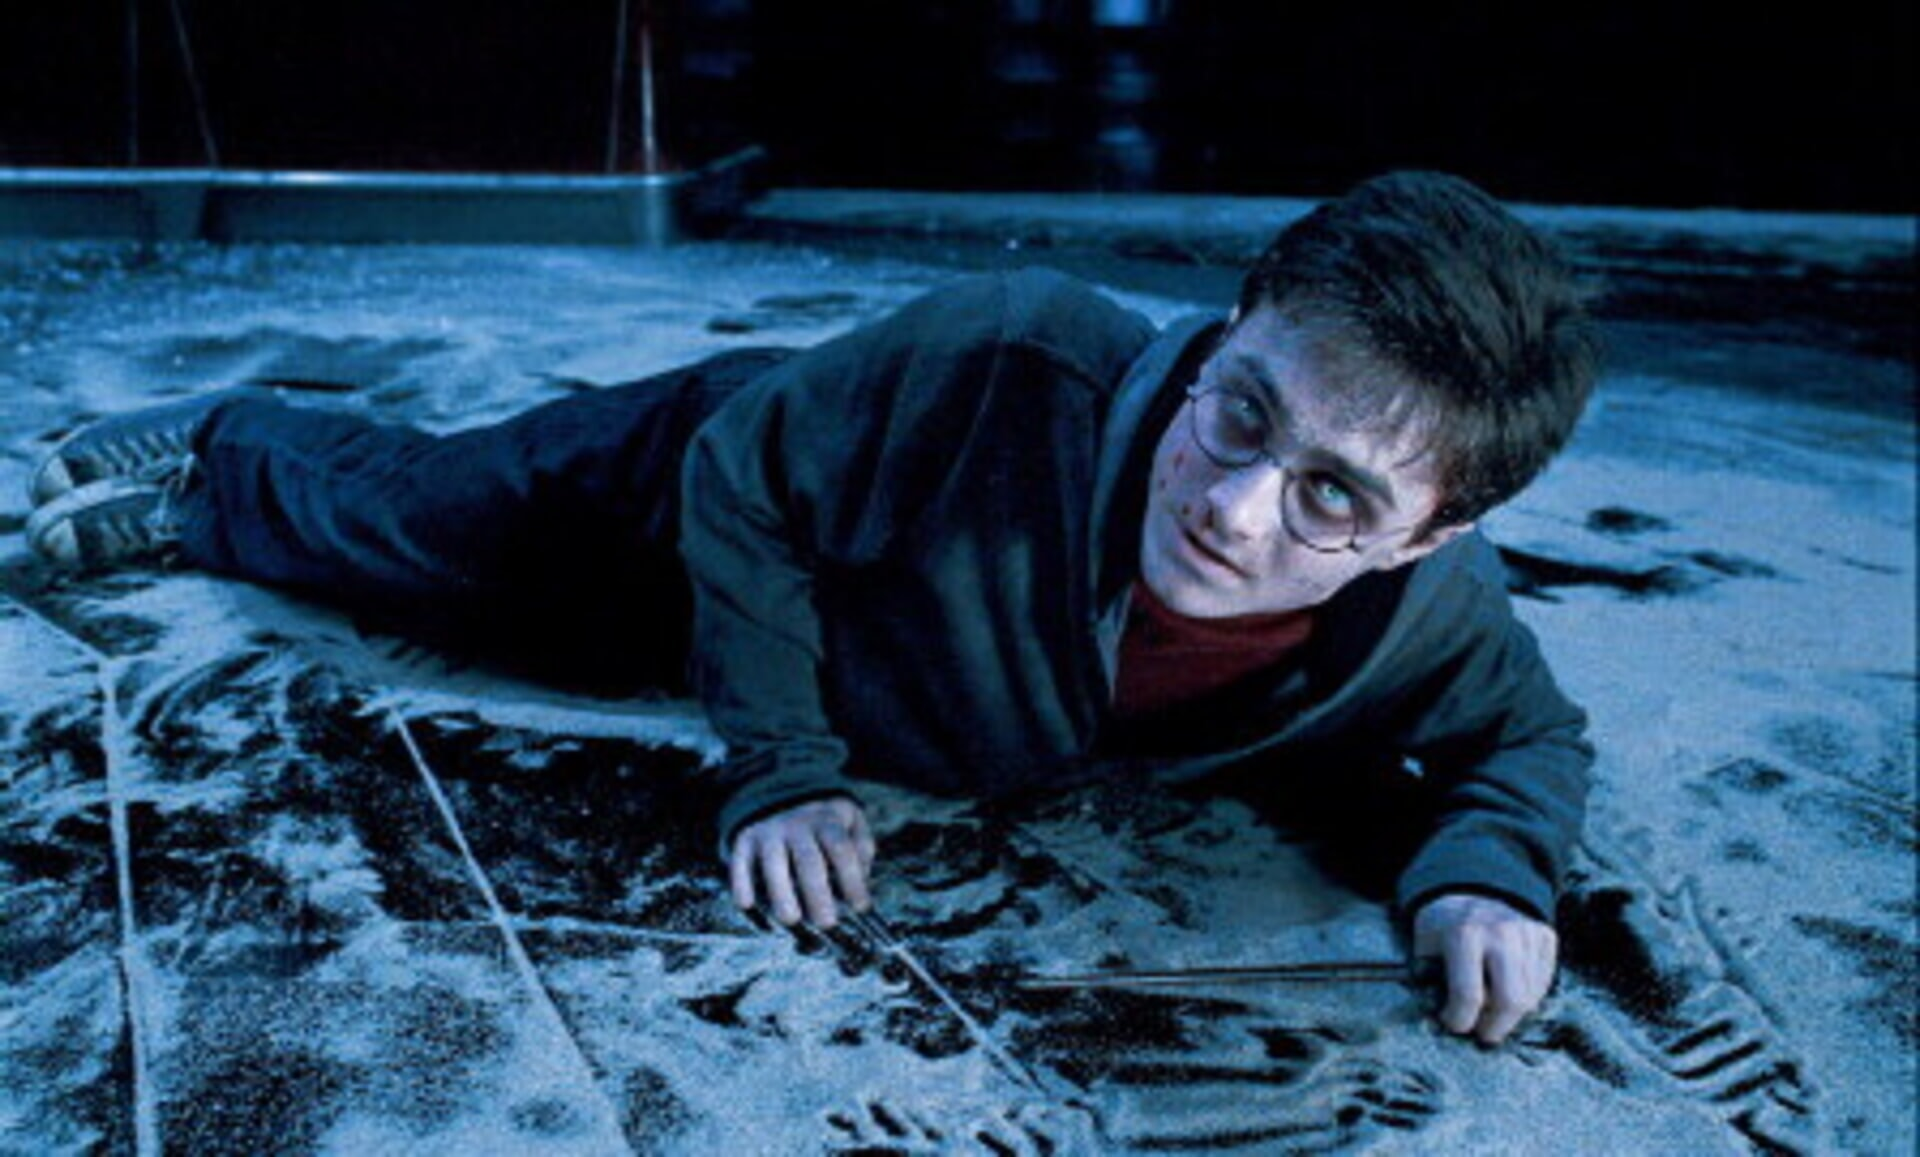 Harry Potter and the Order of the Phoenix - Image 37